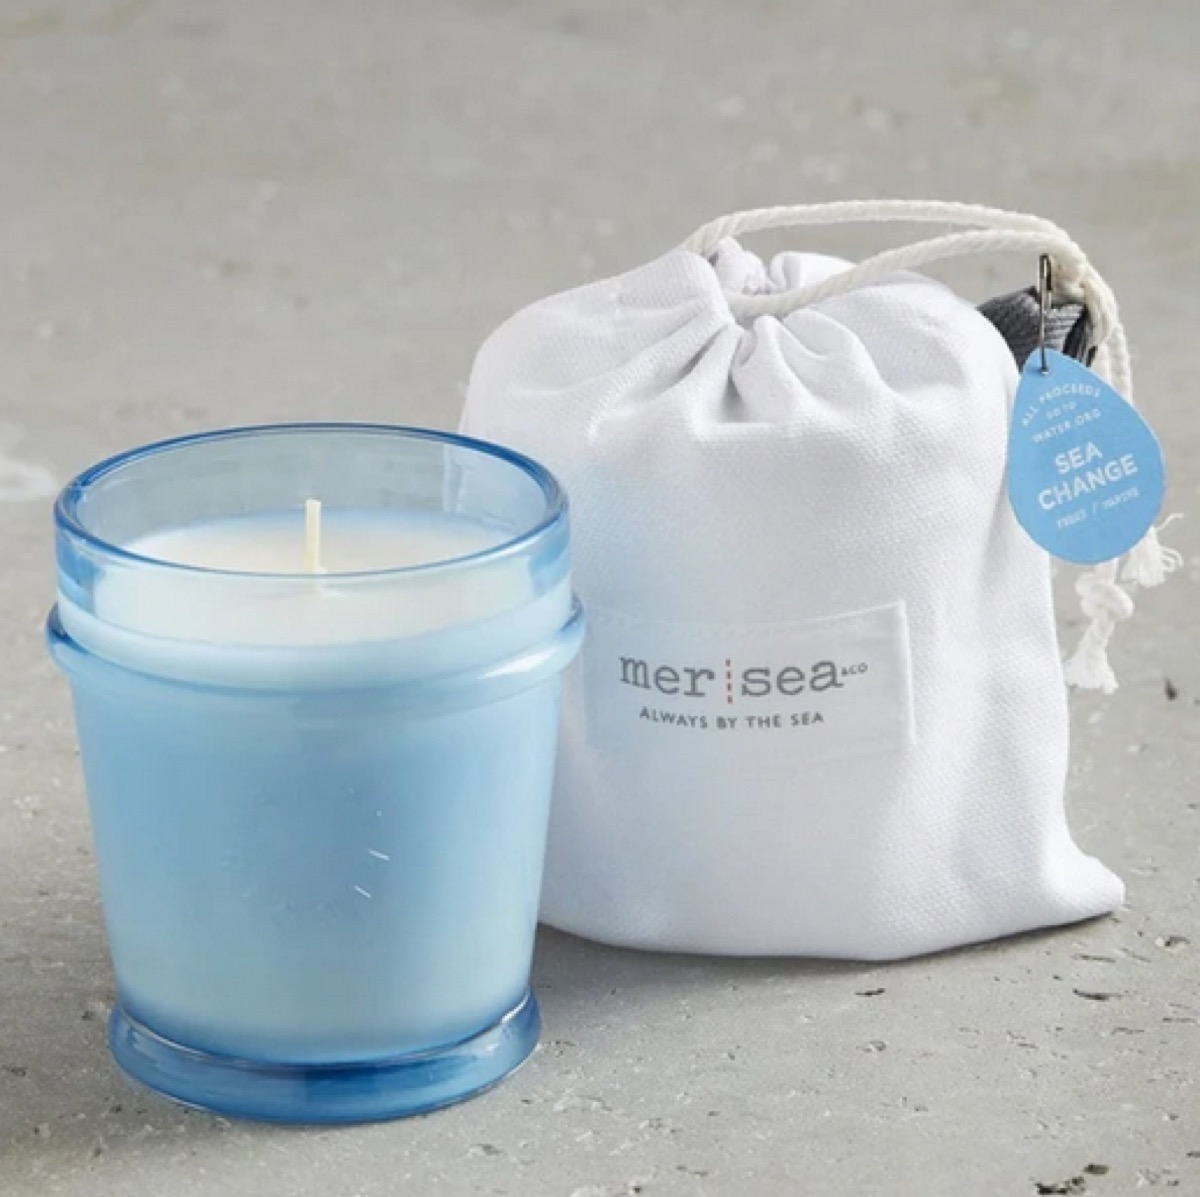 candle in blue glass jar